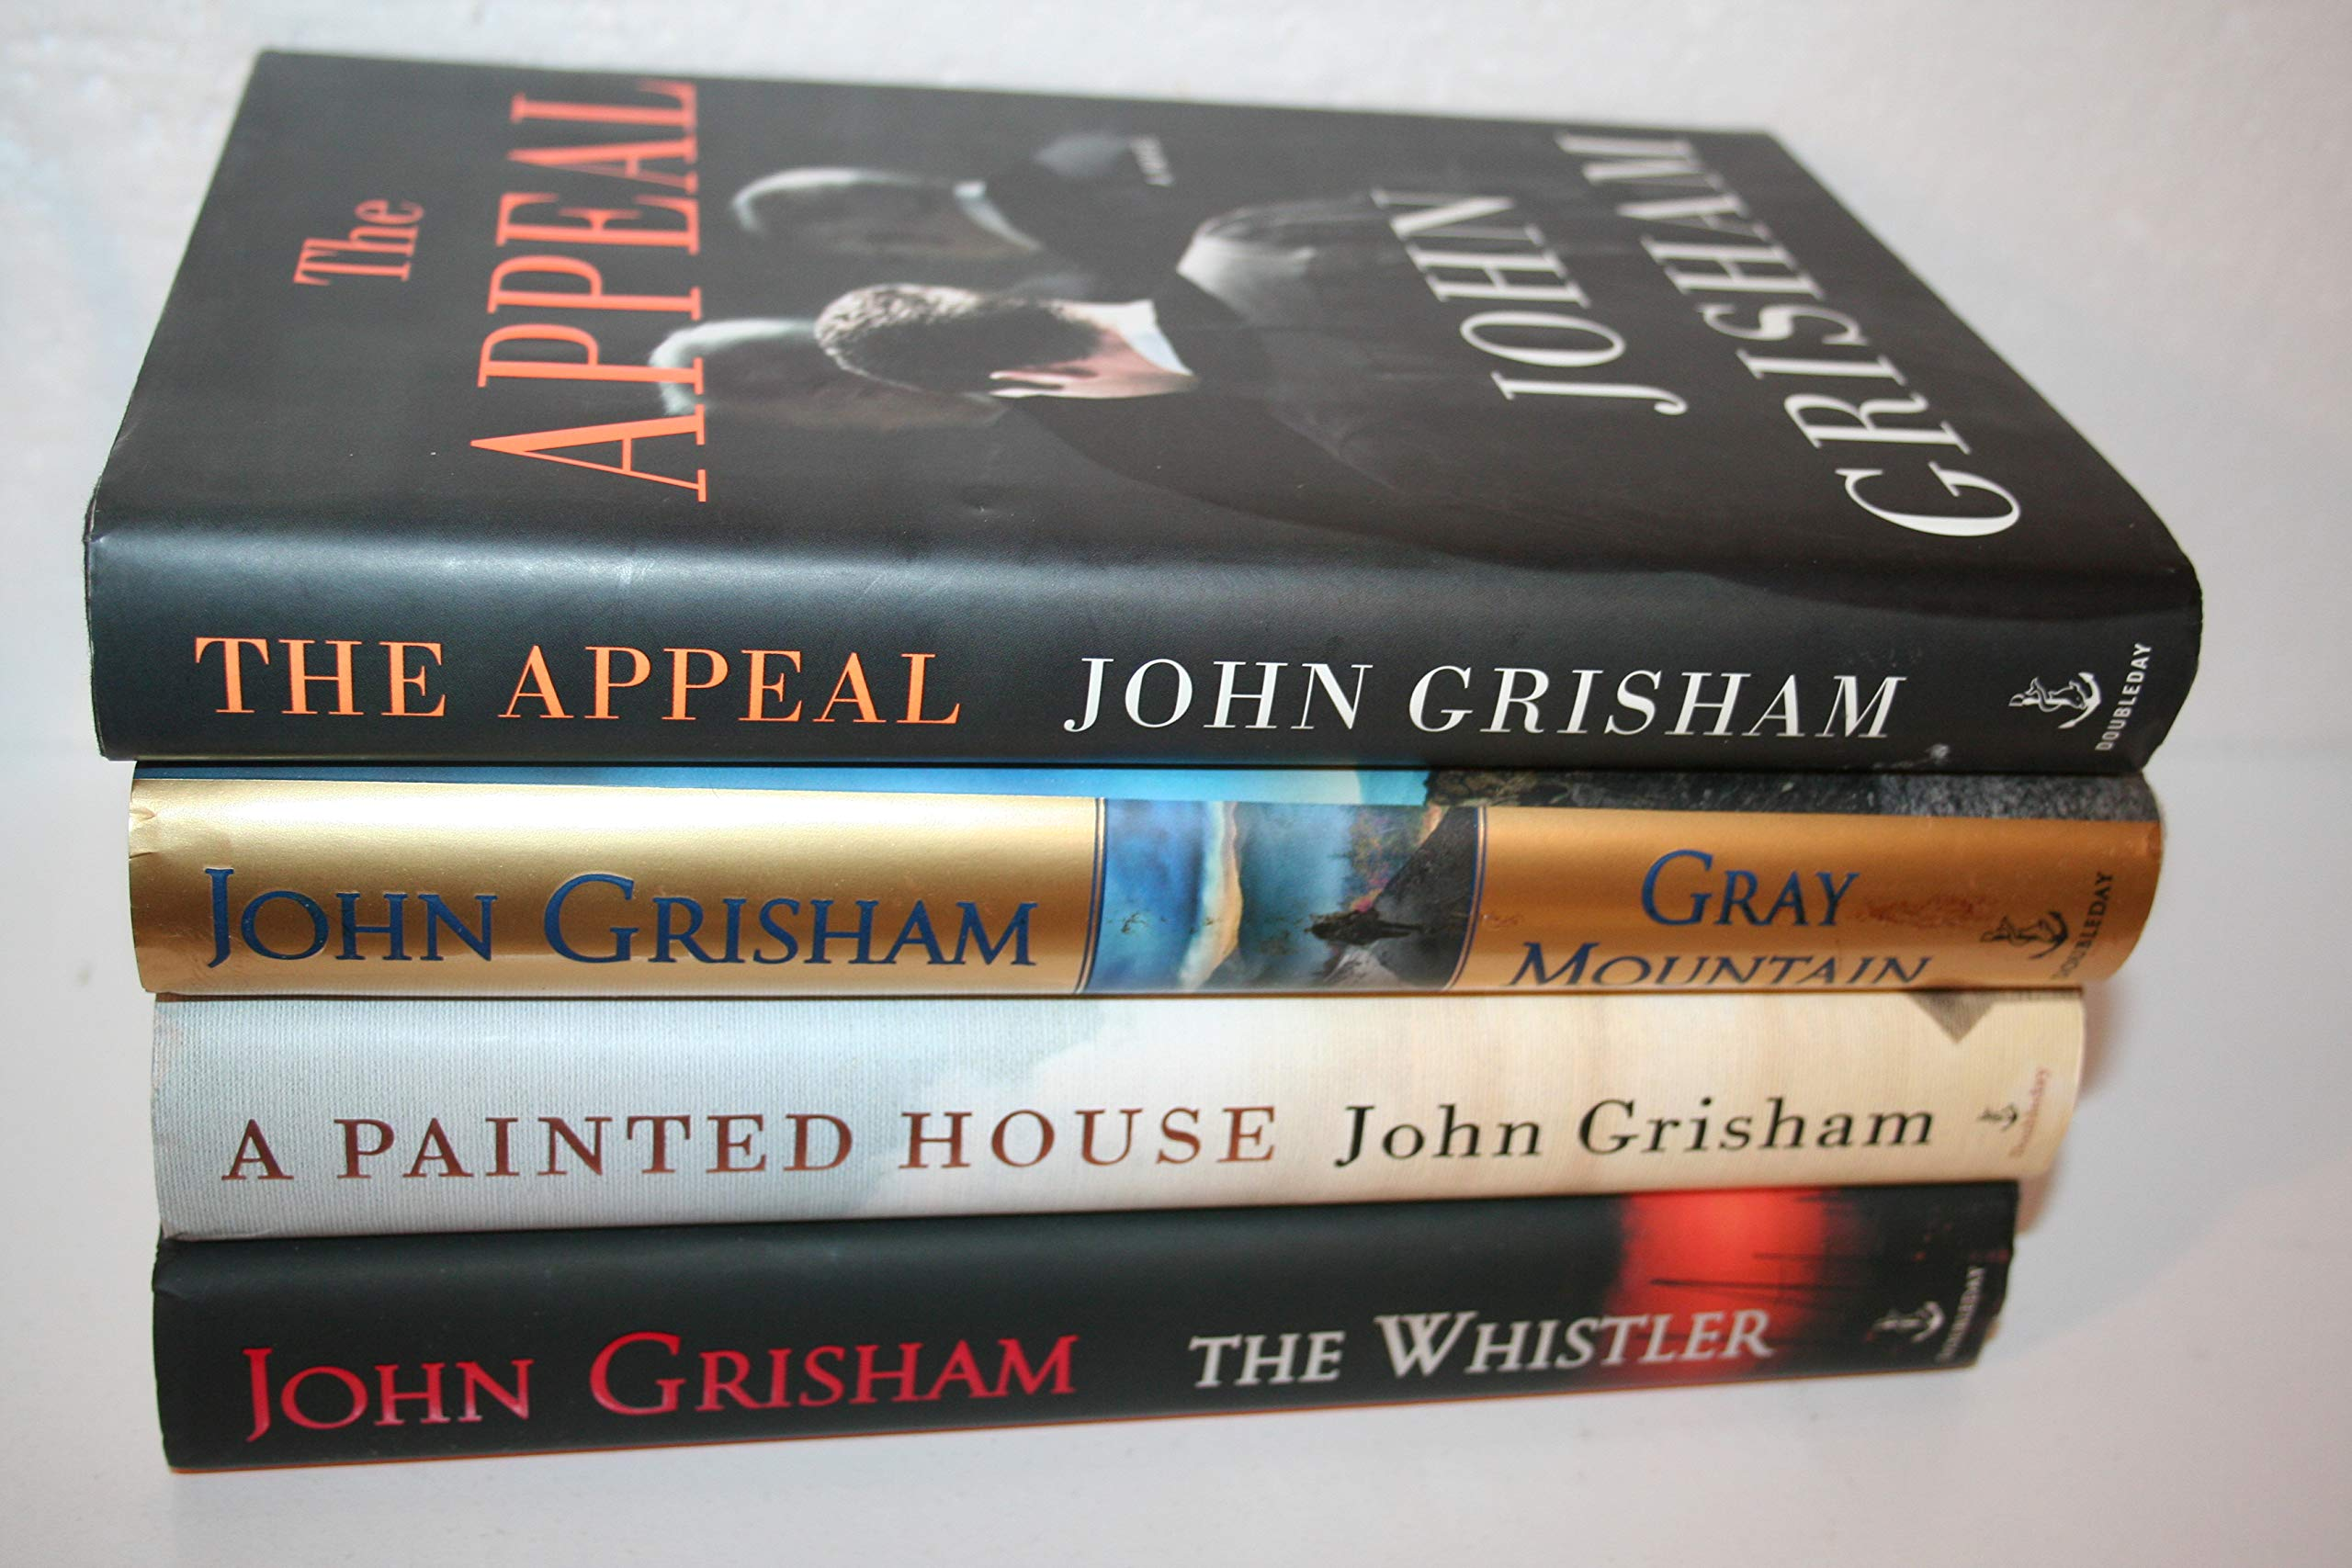 John Grisham 4-title, 1st Edition Sampler [[A Painted House(2000) ; The Whistler(2016) ;Gray Mountain(2014) ;The Appeal(2007) ]]